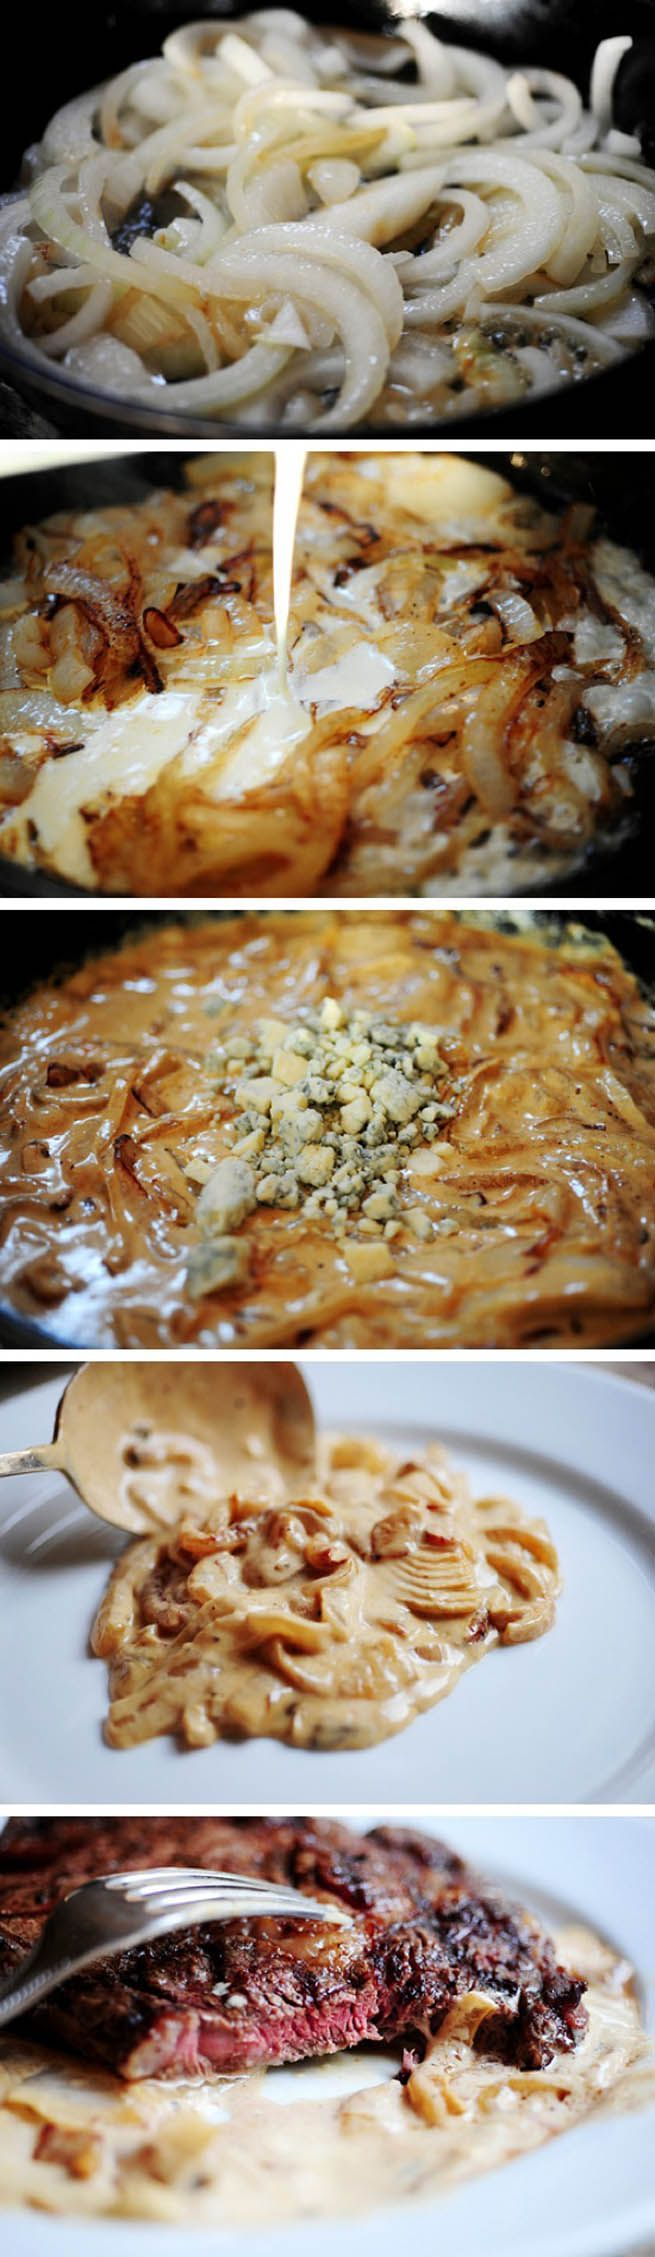 Grilled Ribeye Steak with Onion-Blue Cheese Sauce serve with rosemary rolls